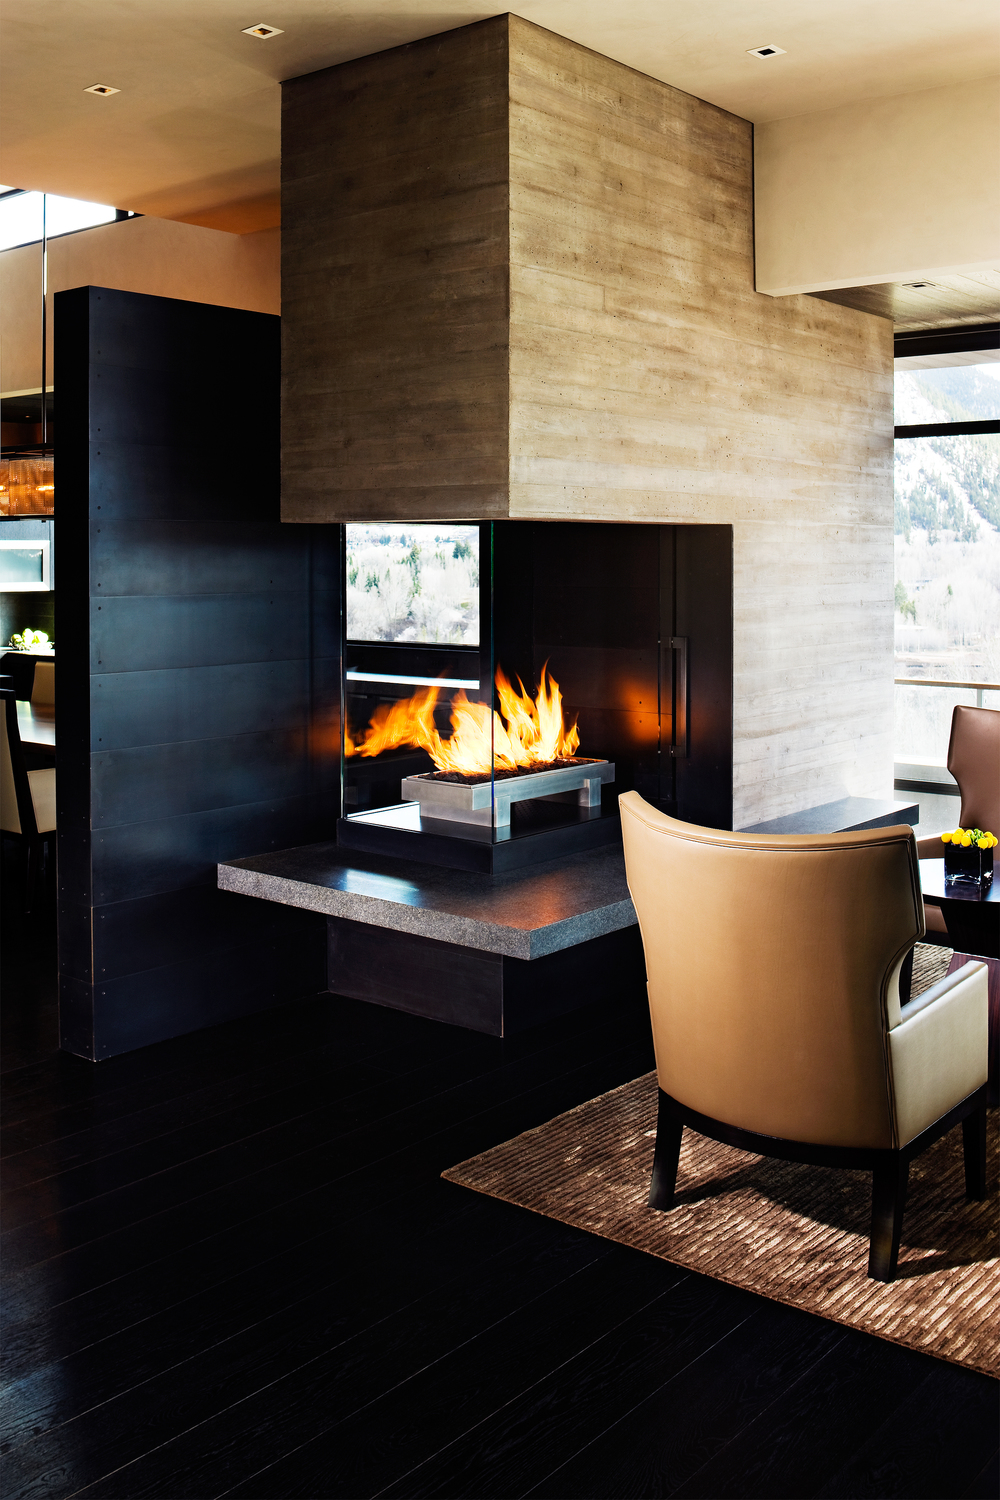 b&gdesign-fireplace.jpg